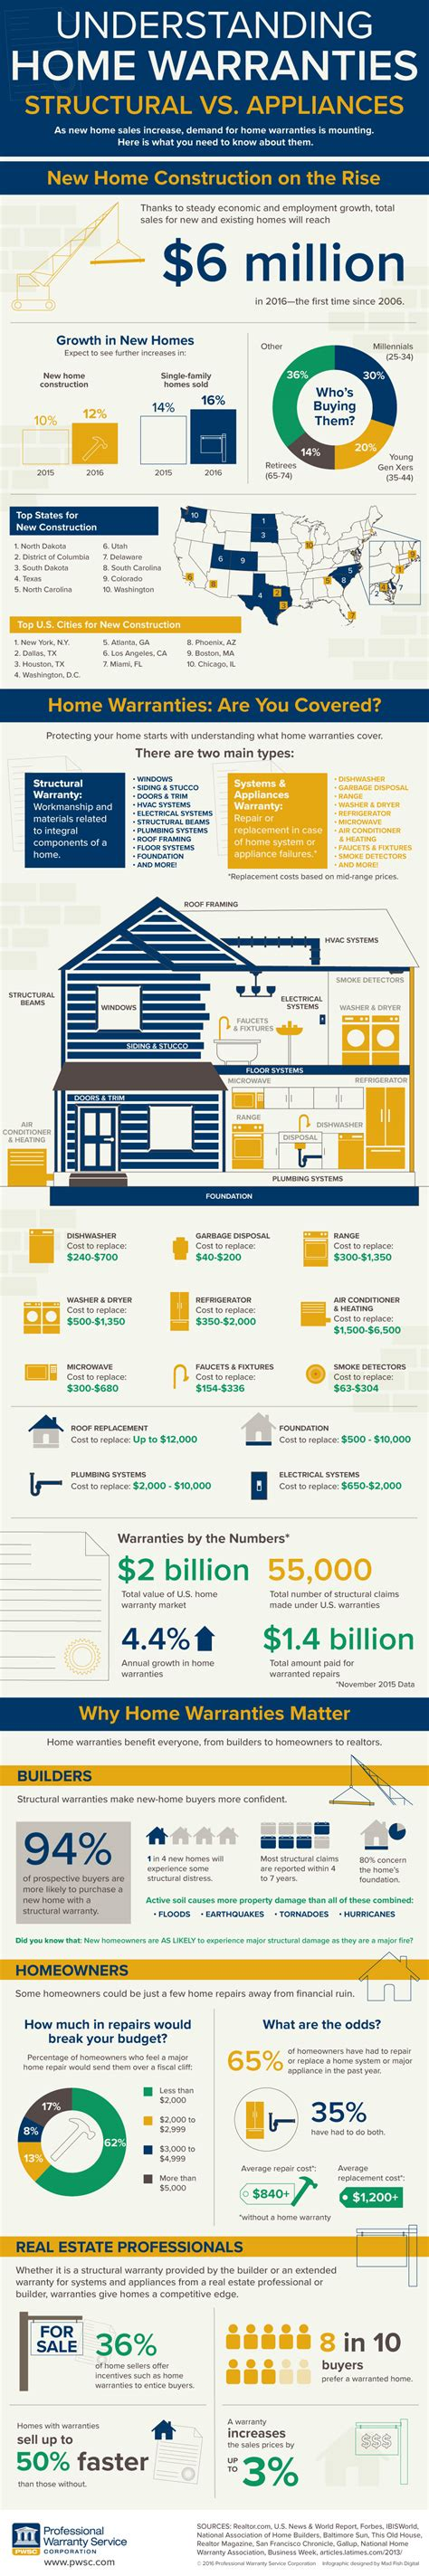 understanding home warranties structural vs systems and